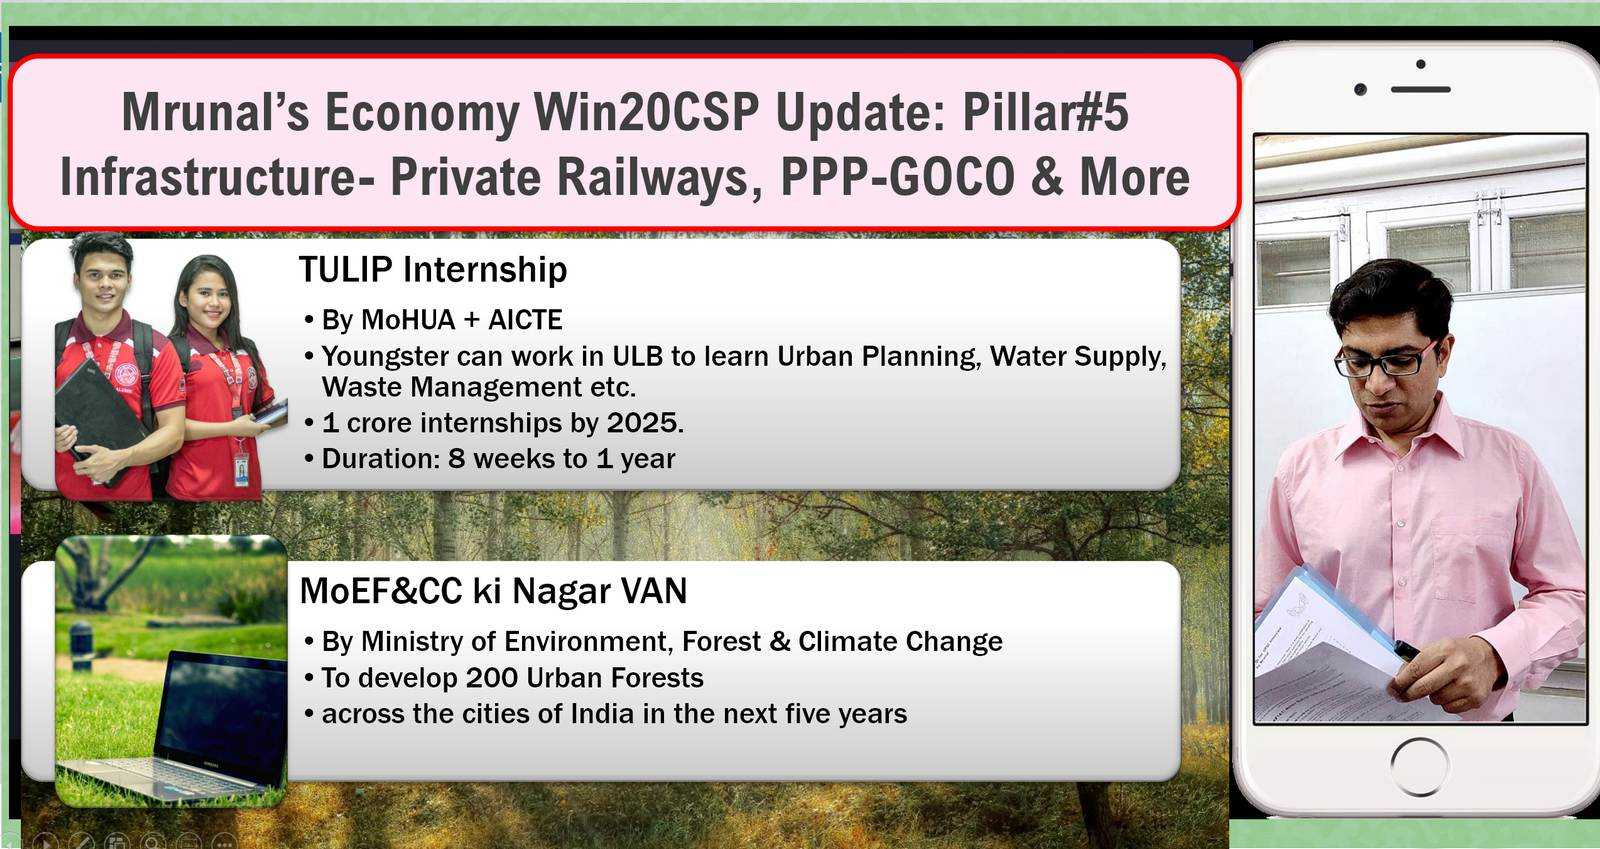 Infrastructure: Private Railways, Tulip, Nagarvan GOCO-PPP & More